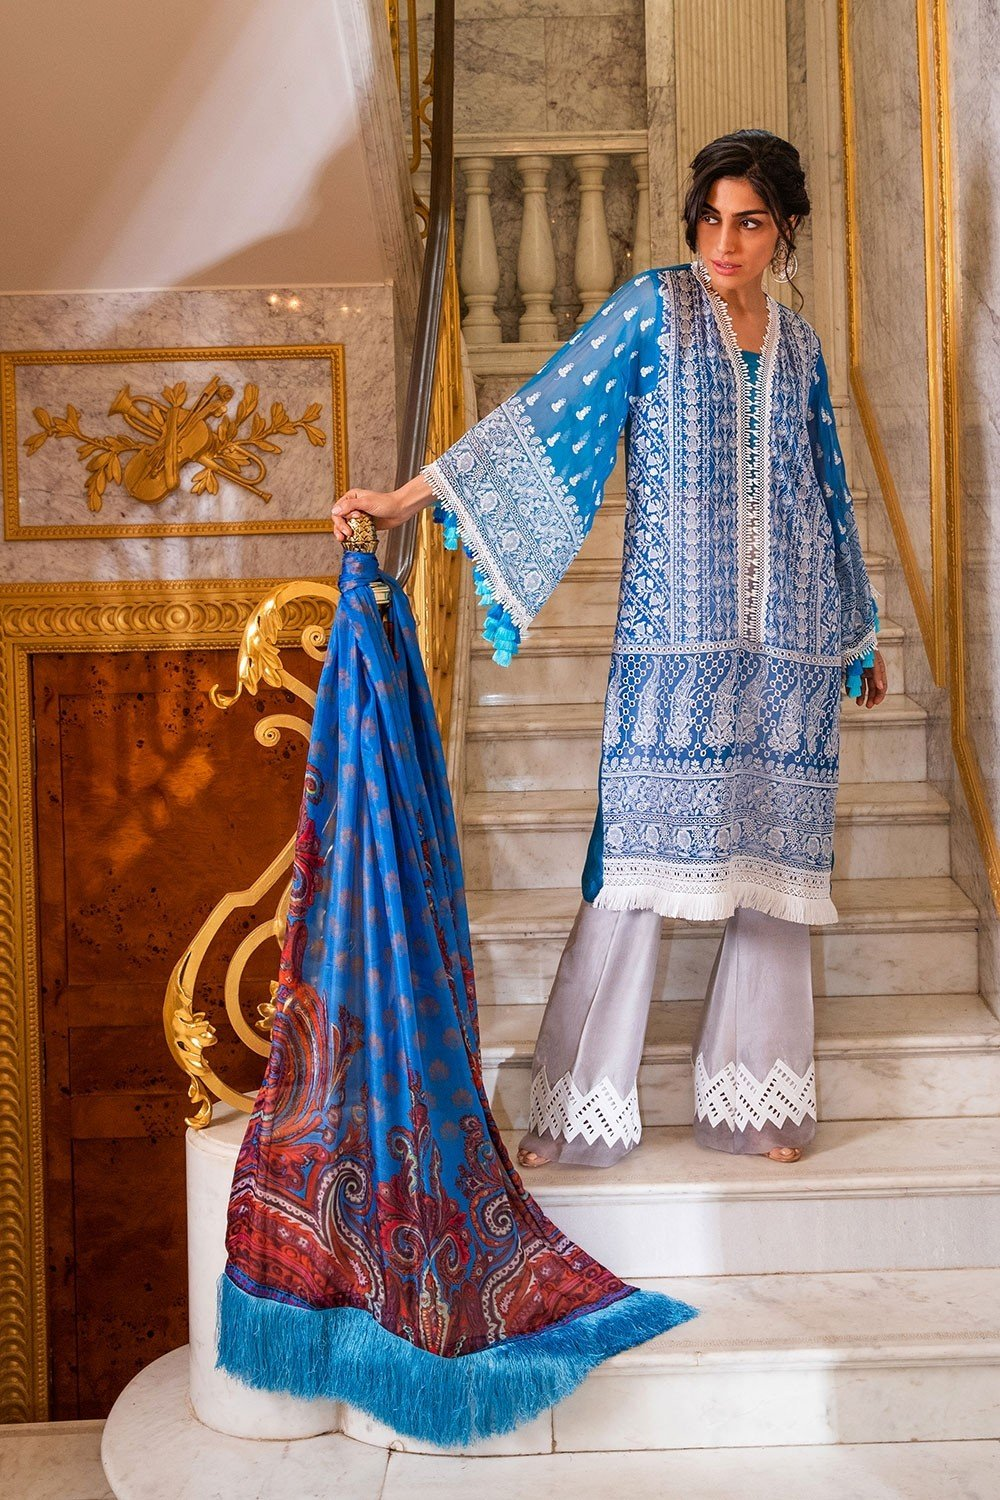 Sobia Nazir Eid Collection 2019 suit 5B - Embroidered Royal Blue Chiffon Kameez, silk dupatta and dyed bottom